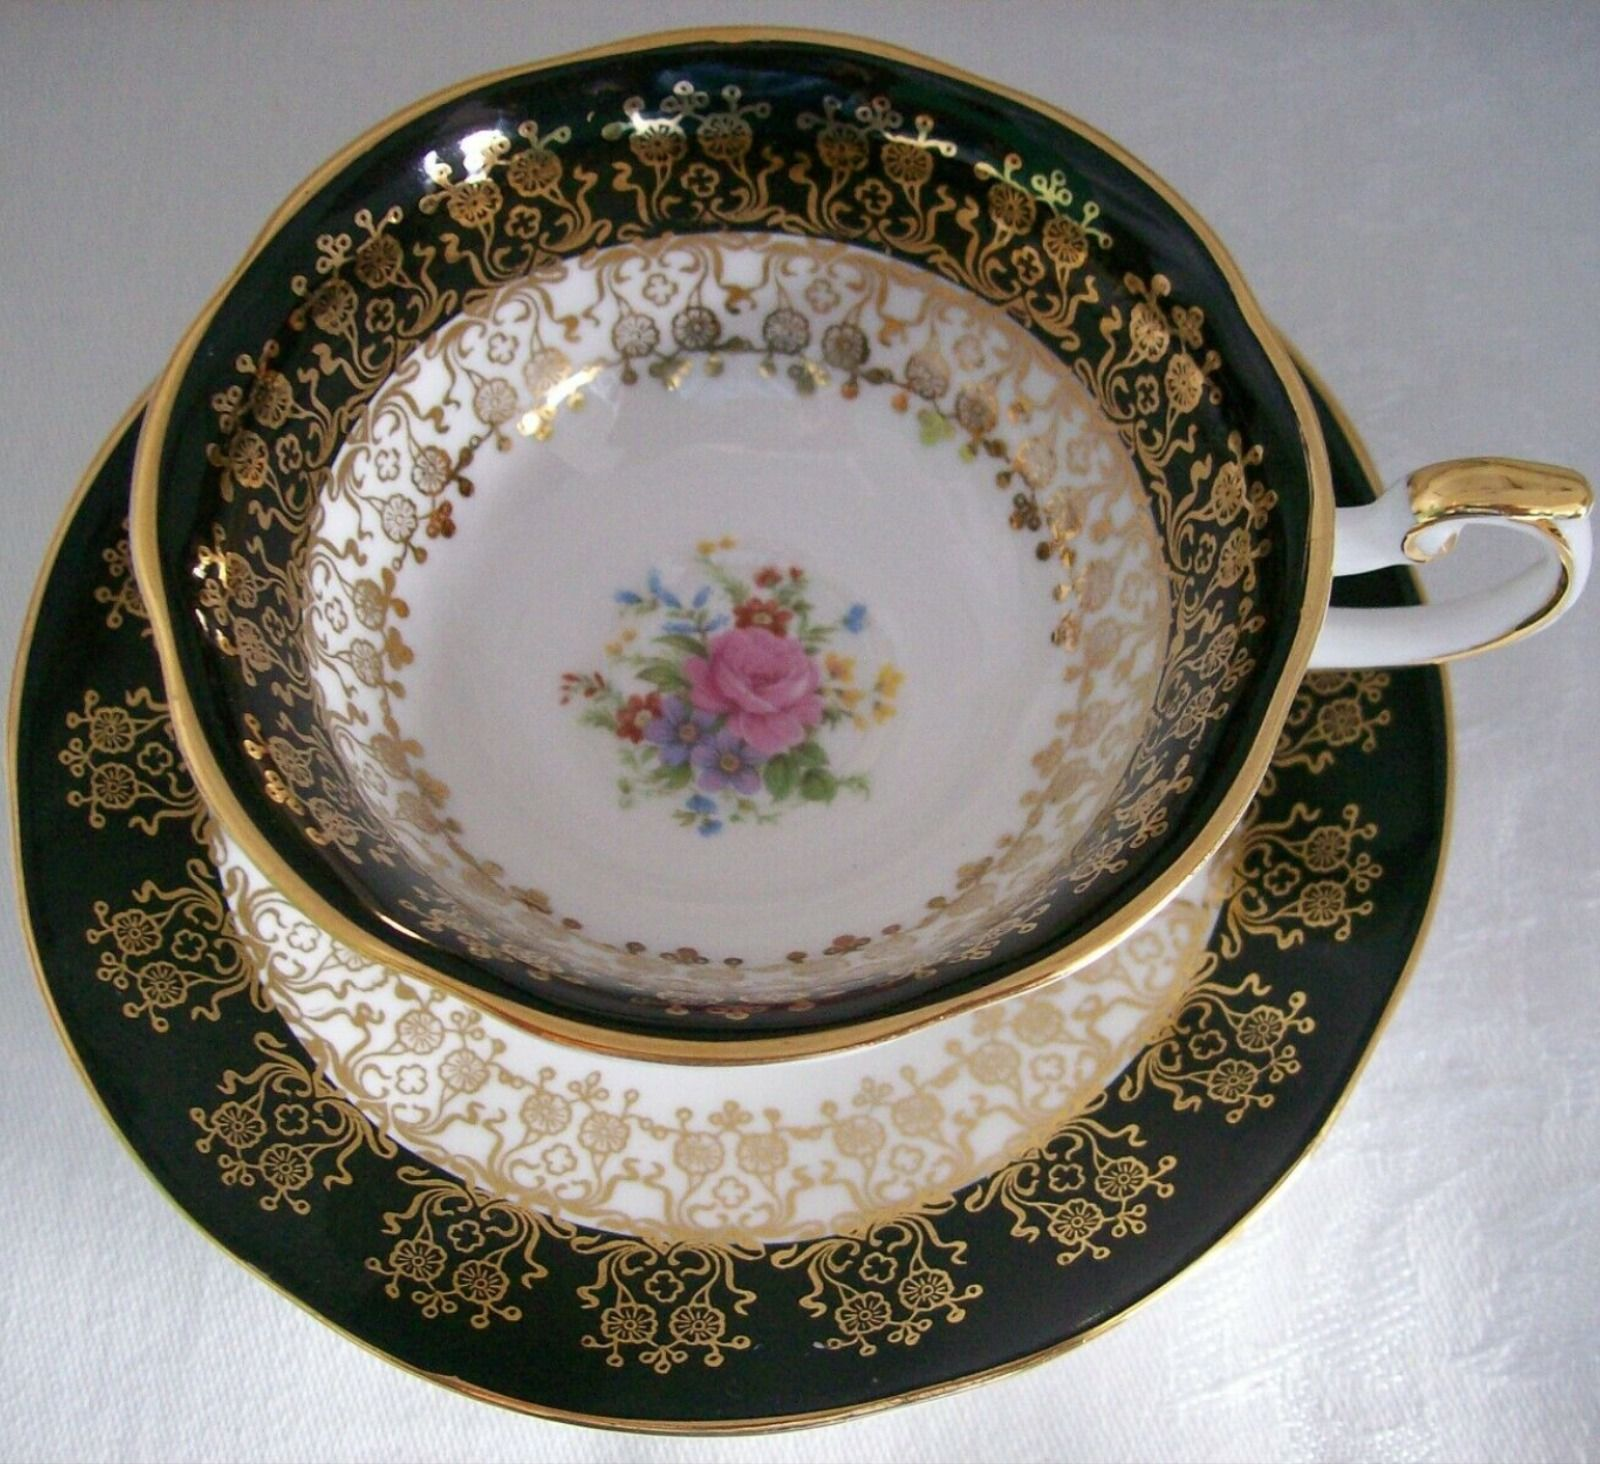 QUEEN/'S MONARCH FINE BONE CHINA TURQUOISE FLORAL TEACUP /& SAUCER SET ~ ENGLAND